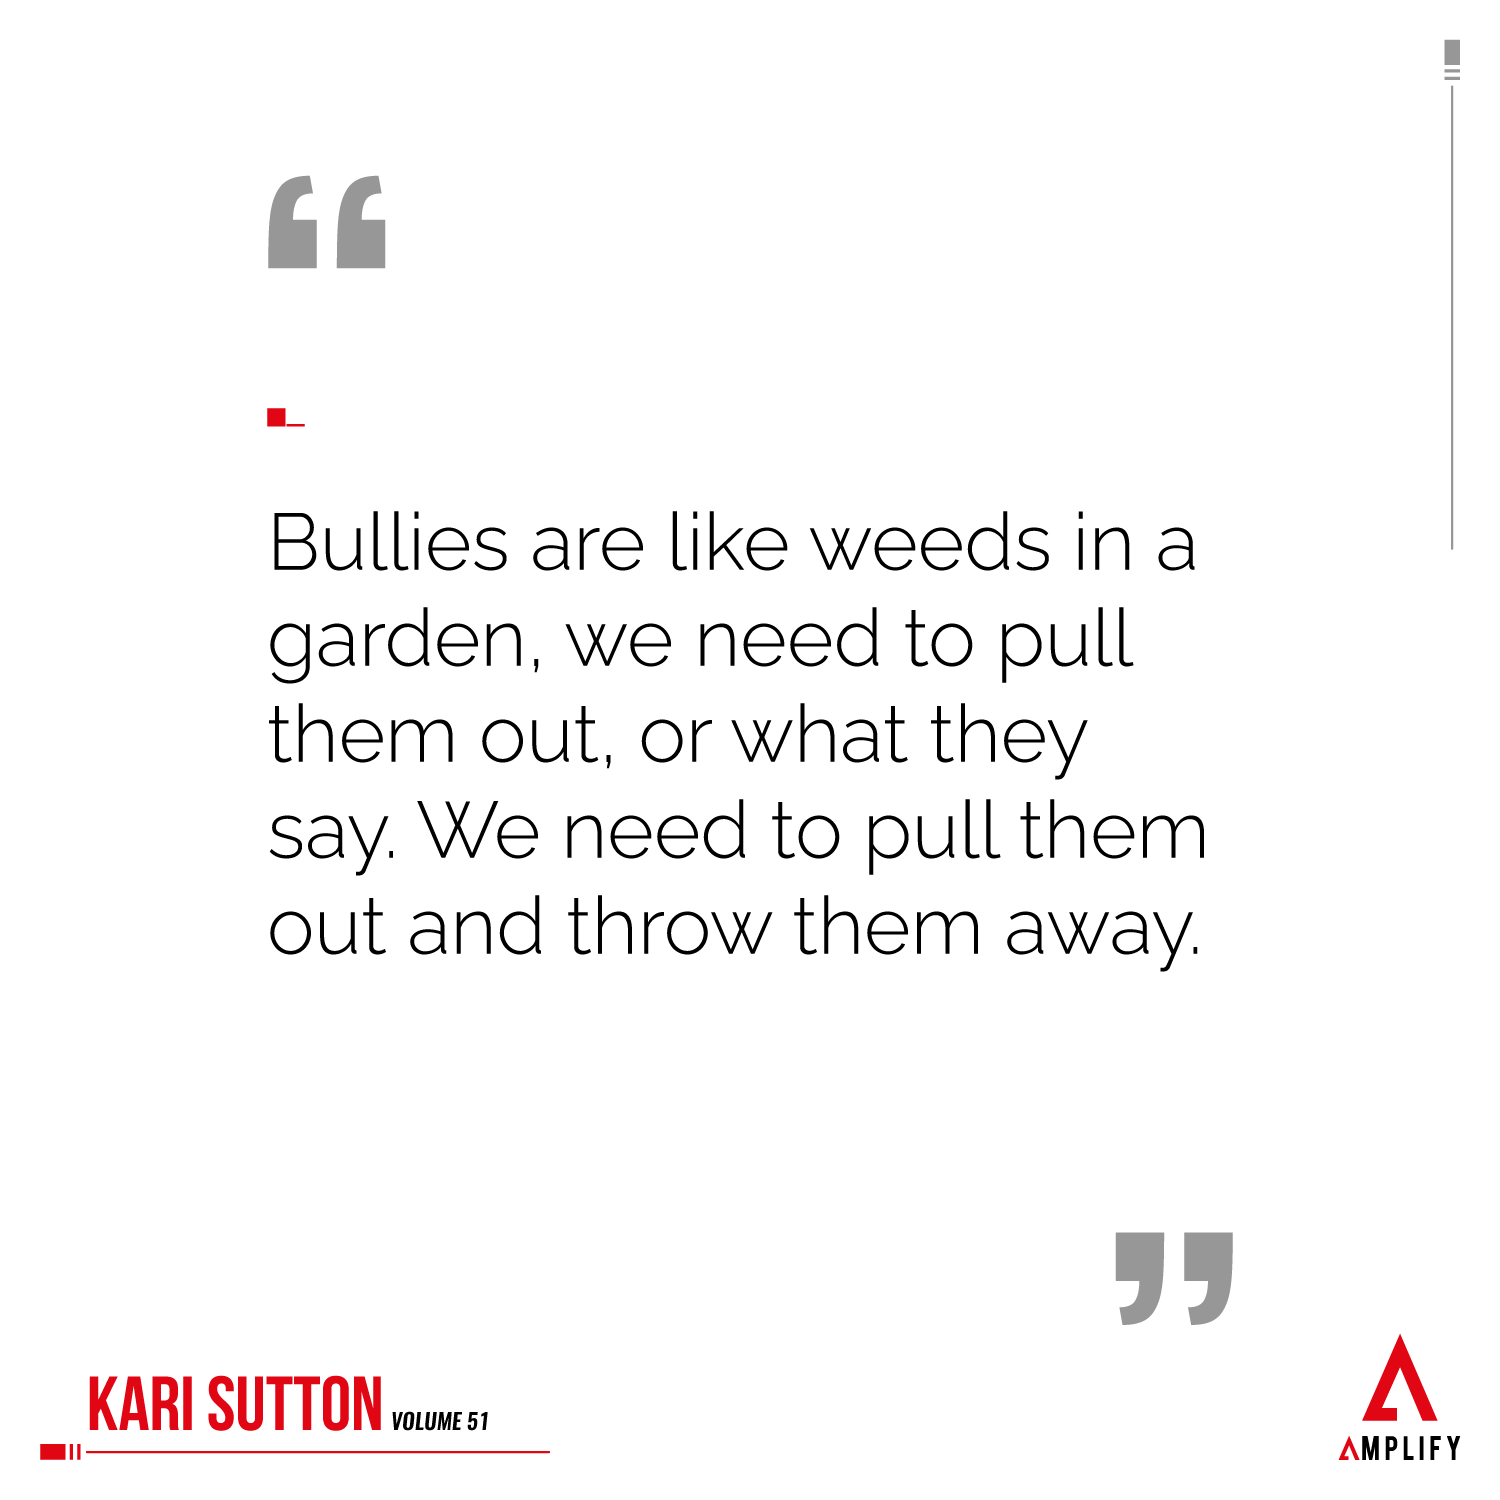 """""""Bullies are like weeds in a garden, we need to pull them out, or what they say. We need to pull them out and throw them away."""""""